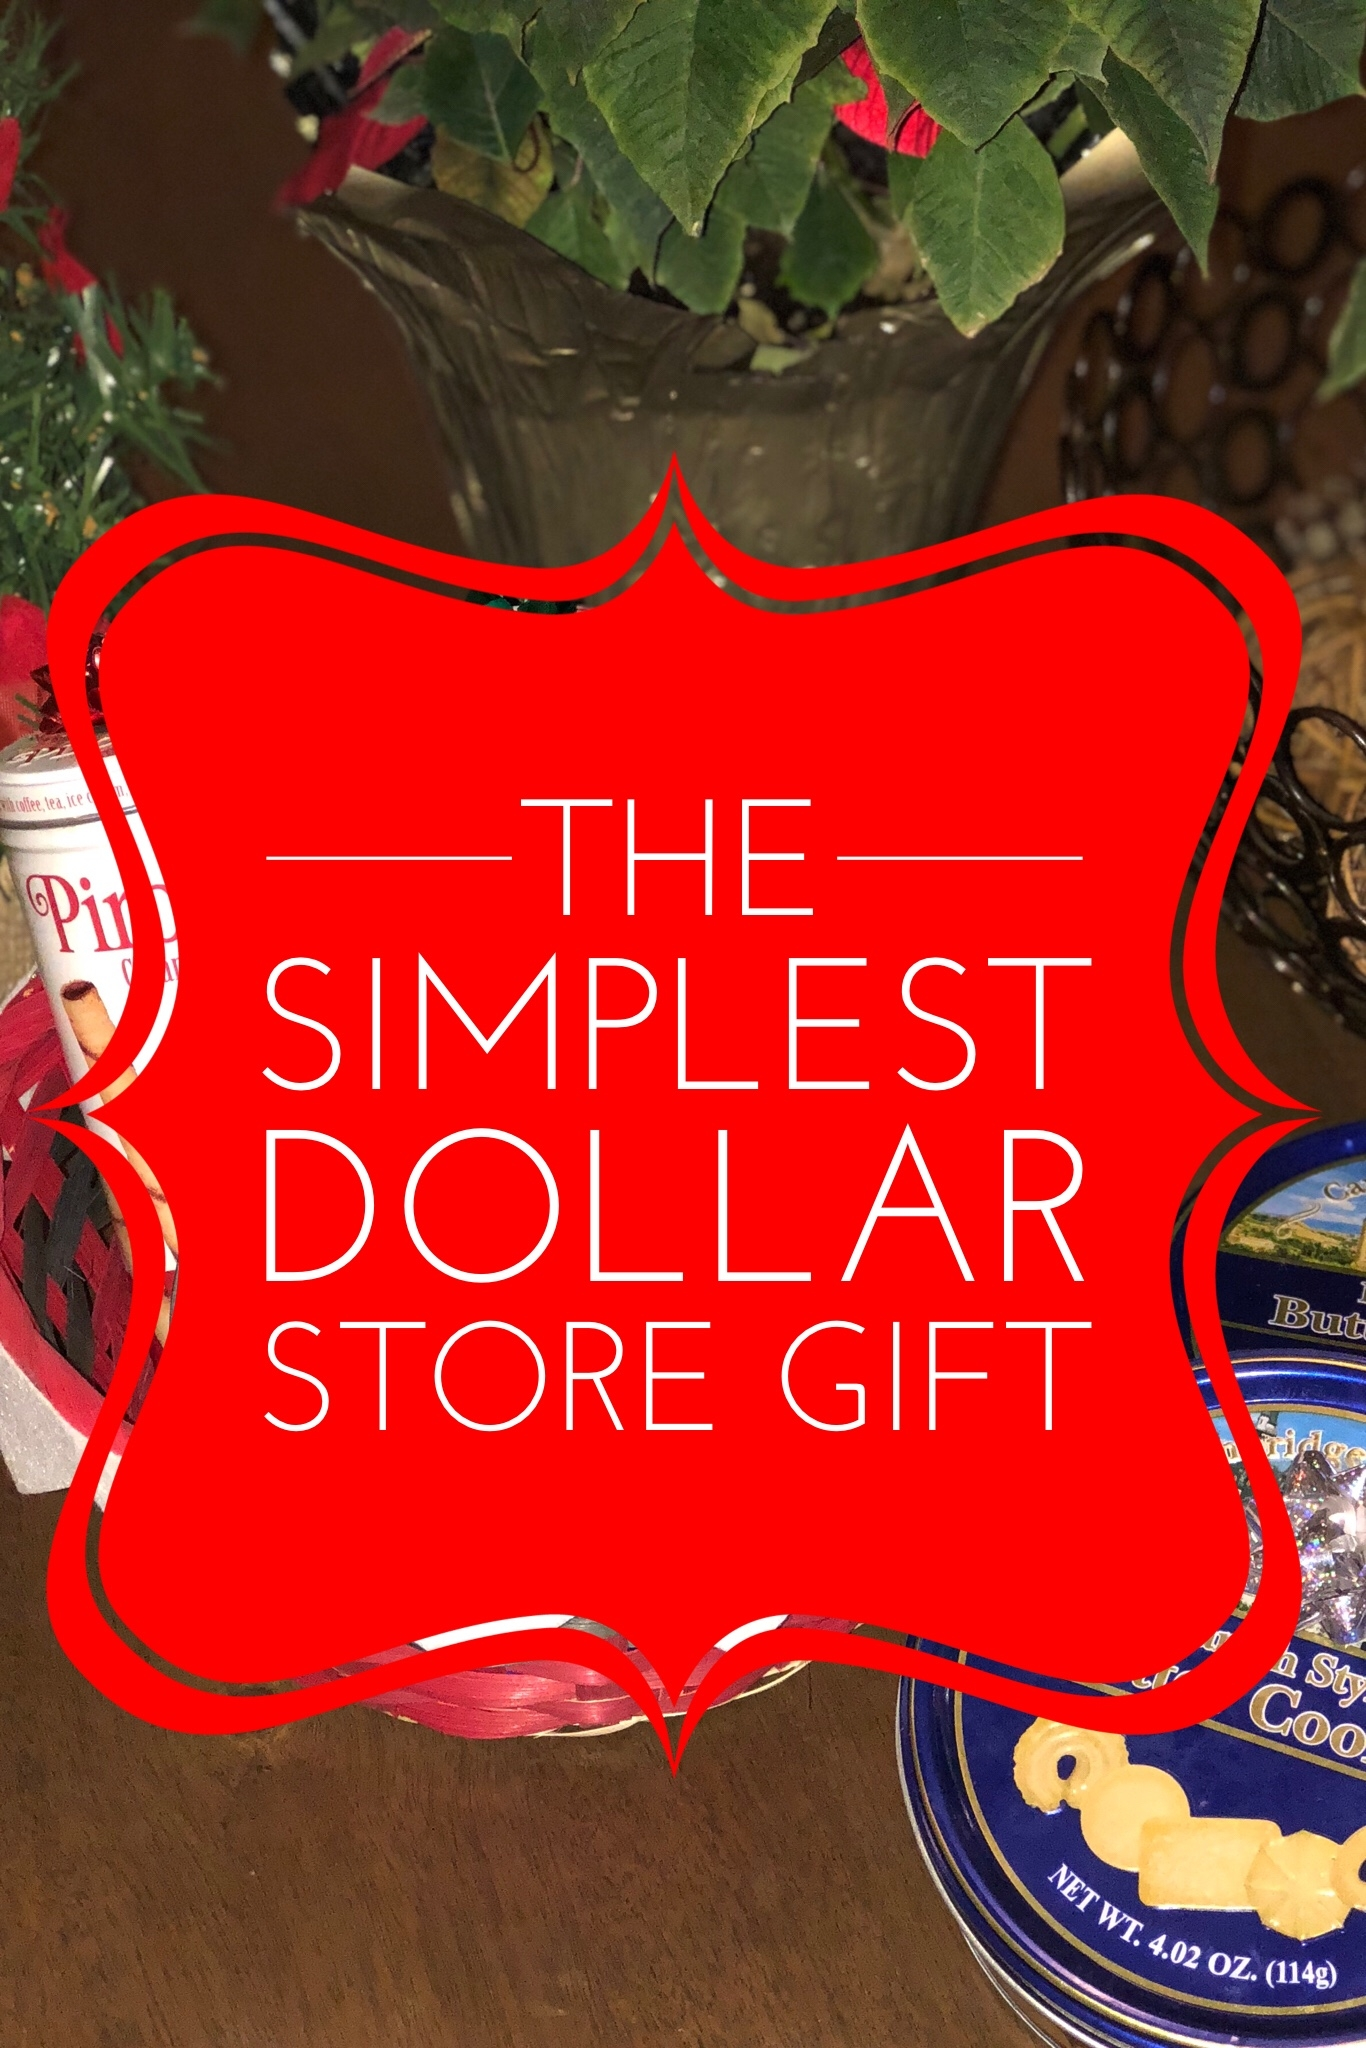 The Simplest Dollar Store Gift